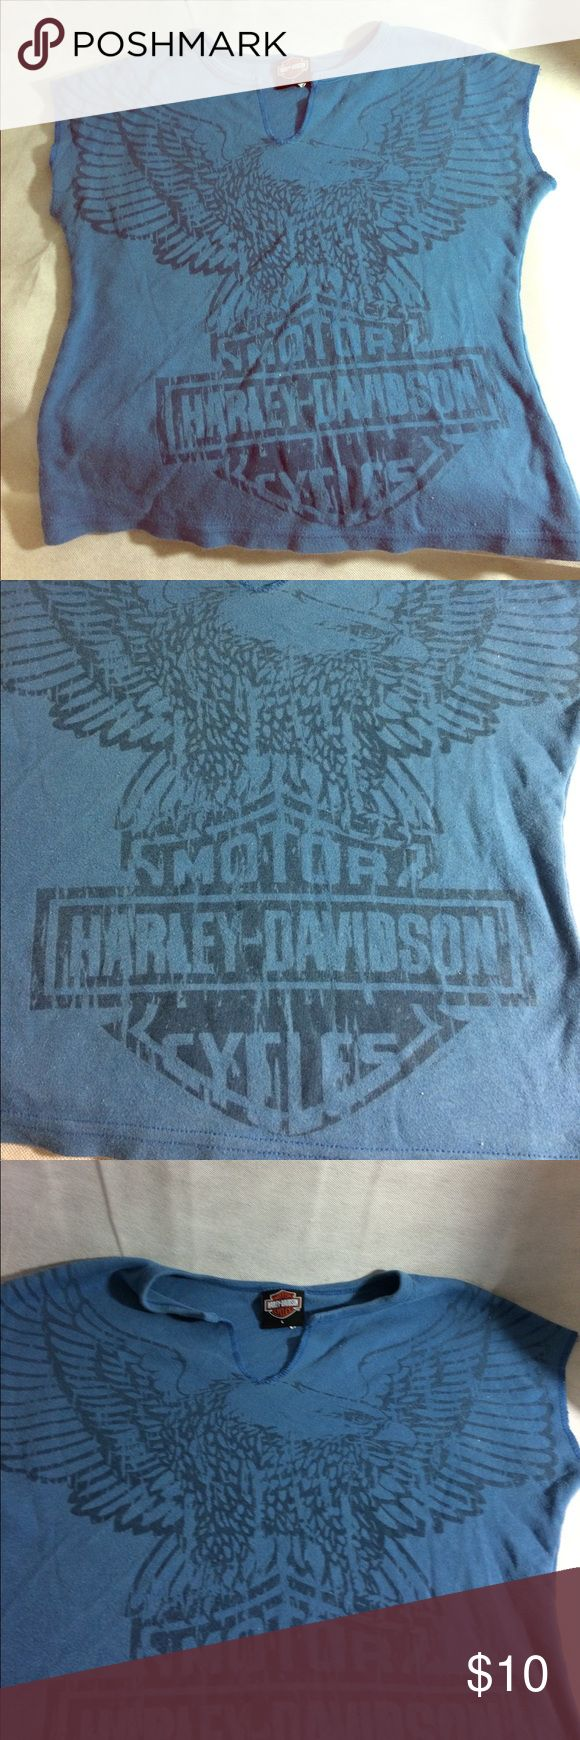 Blue Harley Davidson top This is the blue Harley Davidson top that has the eagle on the front with the Harley logo then on the back it's a San Diego Harley Davidson California. It is in great condition Harley-Davidson Tops Tees - Short Sleeve